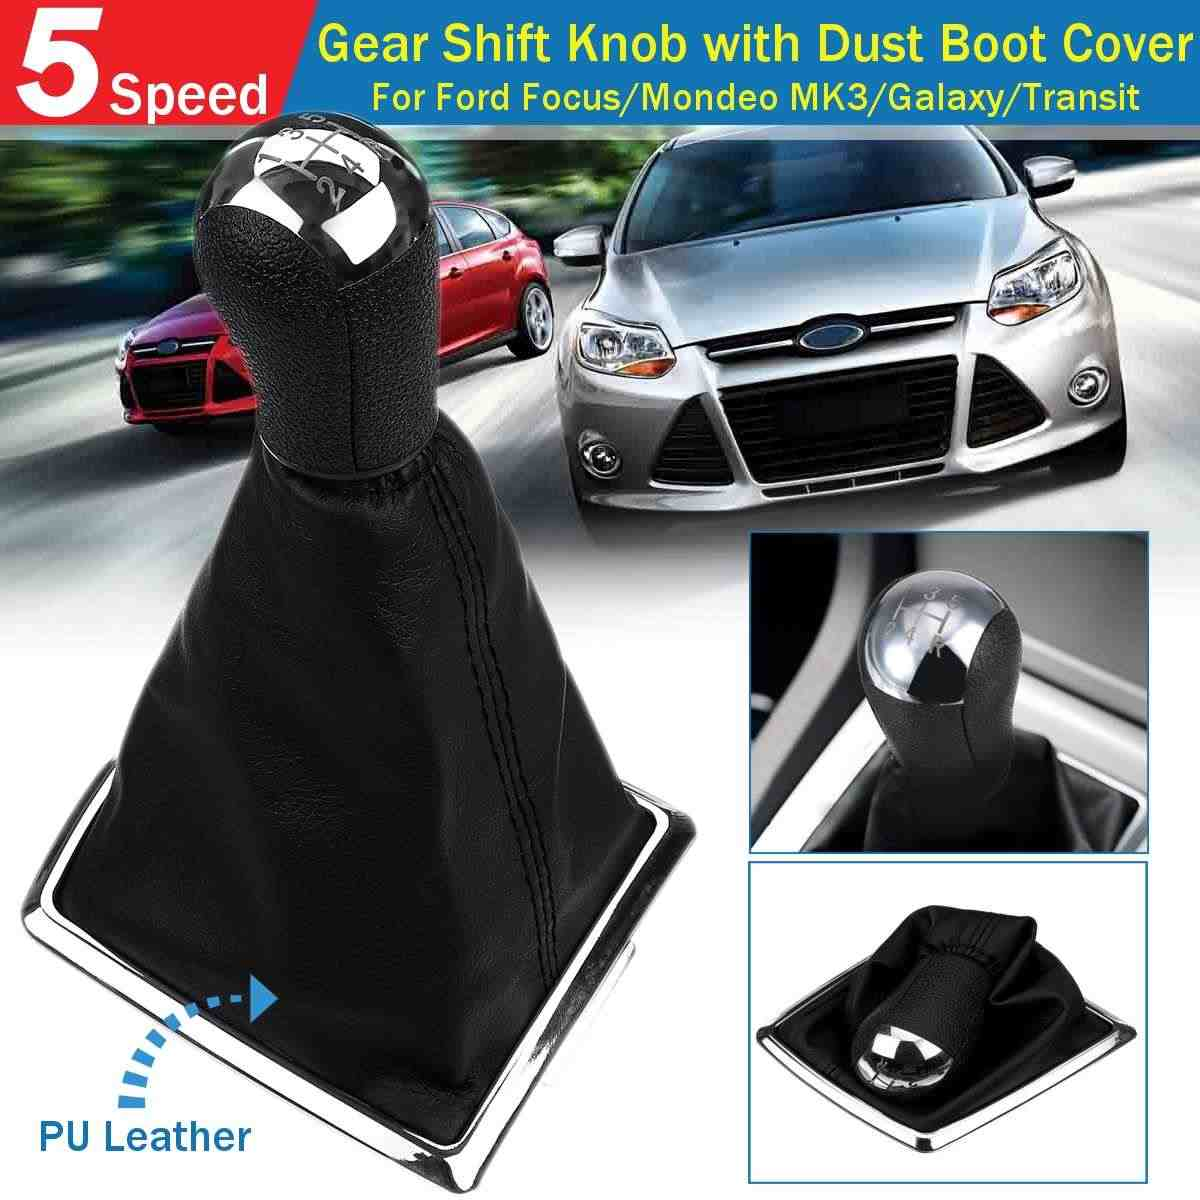 Abs 5 Speed Gear Shift Knob Gaiter Boot Dust Cover For Ford Focus 2 Mk2 Mondeo Mk3 C Max S Max Mustang Galaxy Fiesta Mk6 Transit Aliexpress